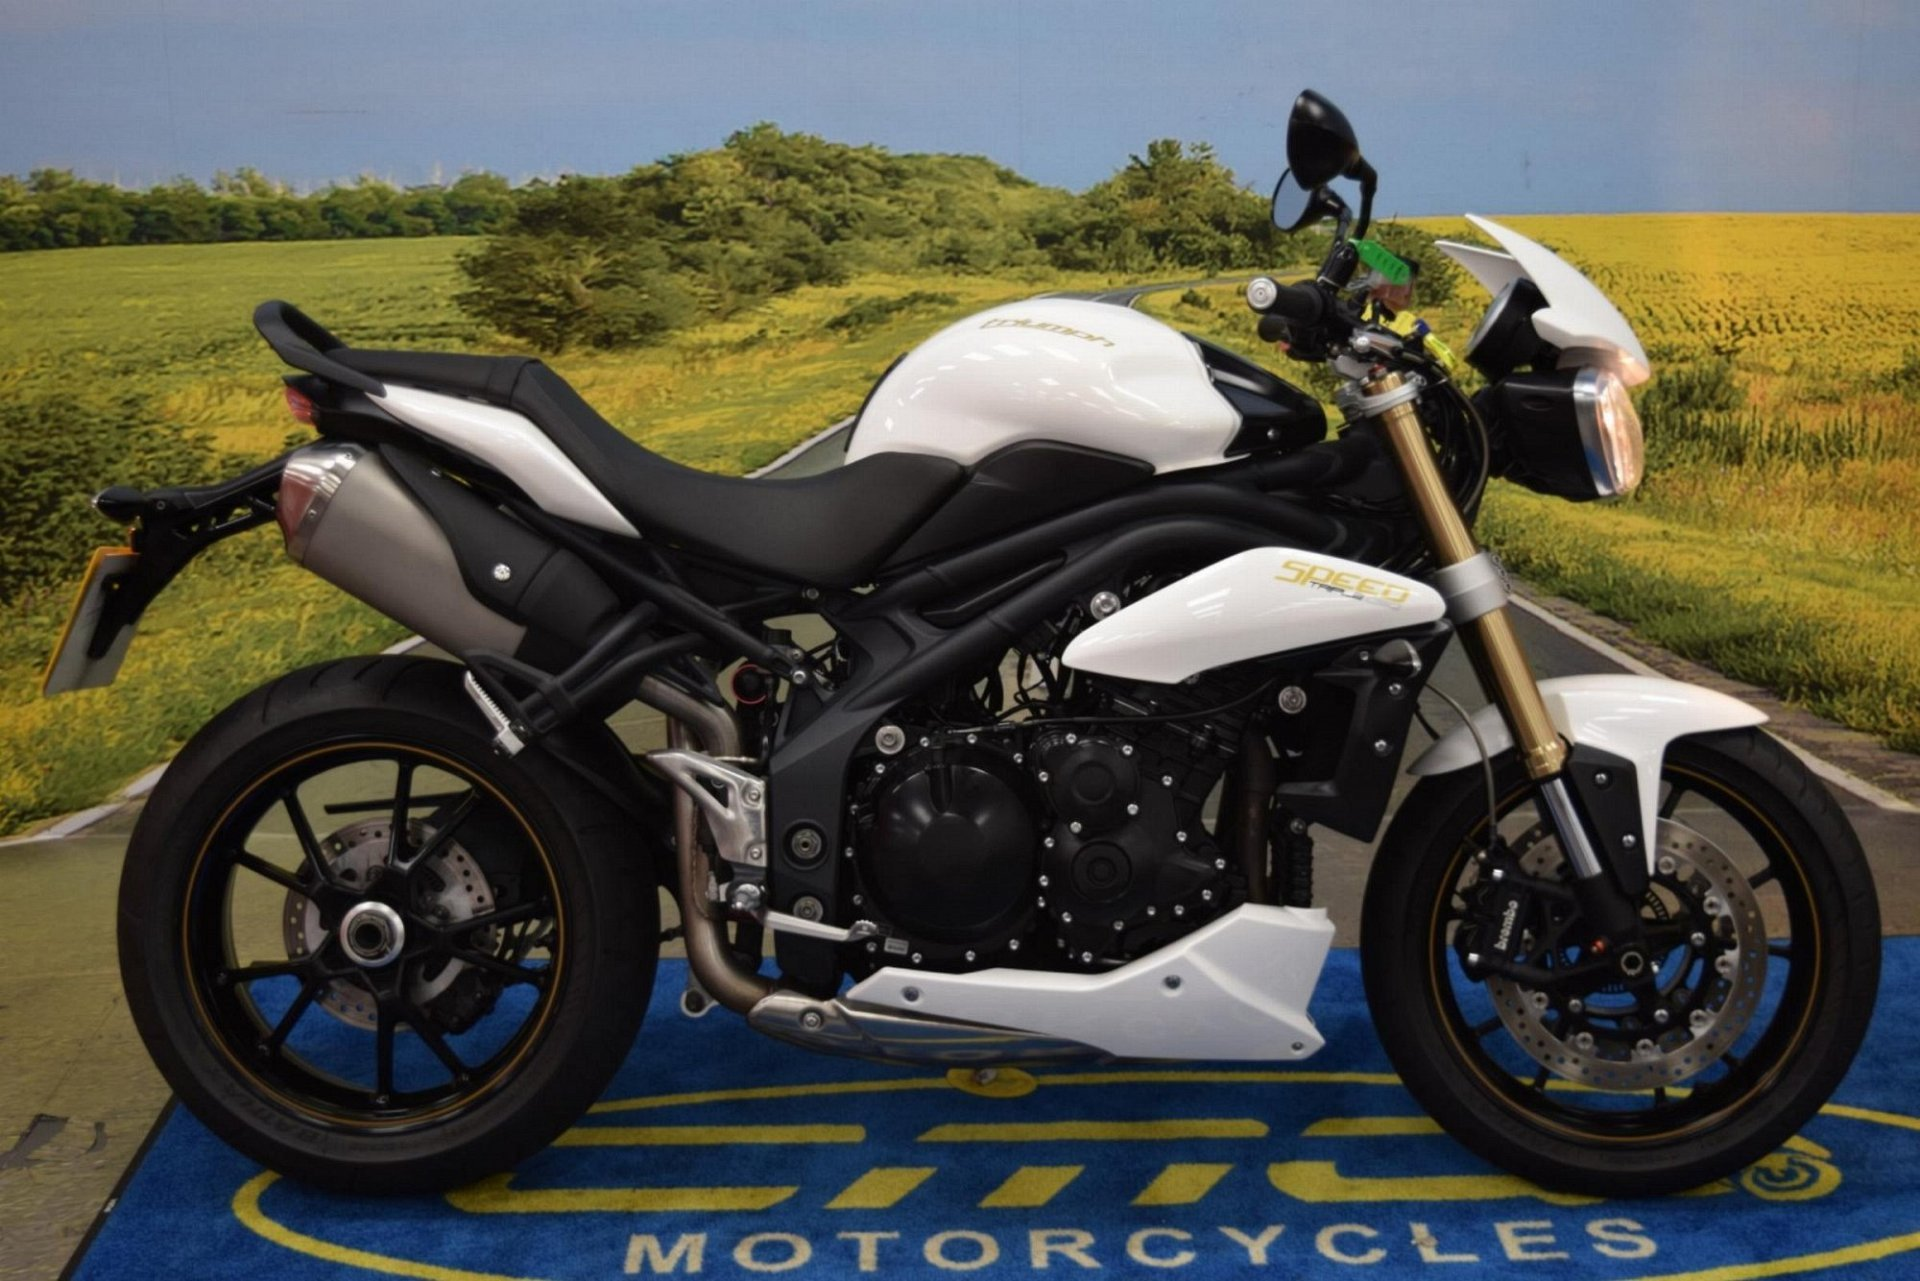 2013 Triumph Speed Triple 1050 for sale in Staffordshire